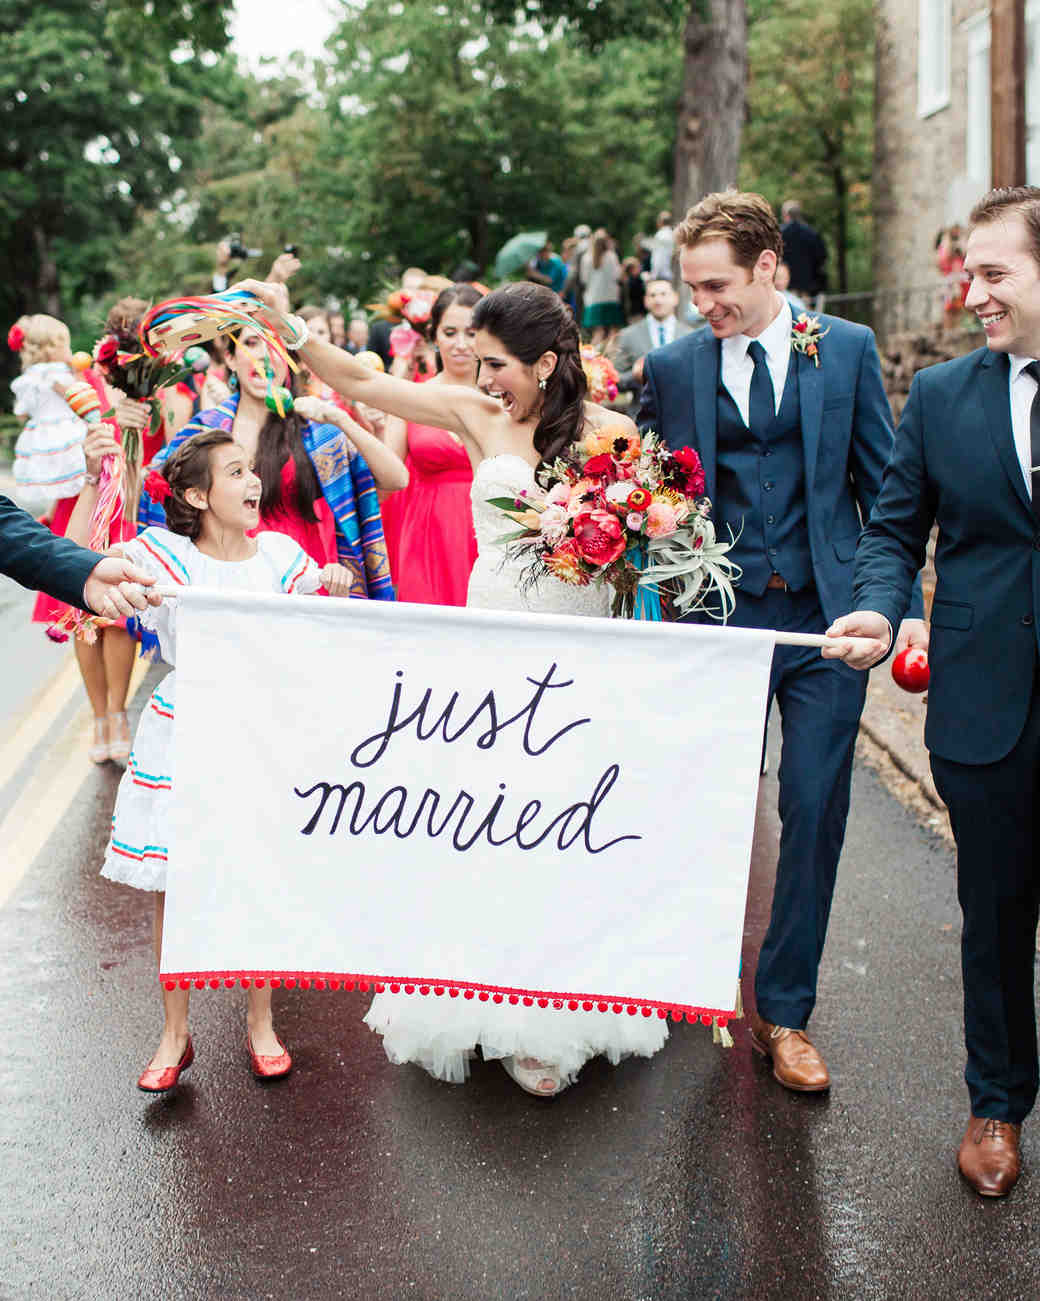 just married sign banner couple